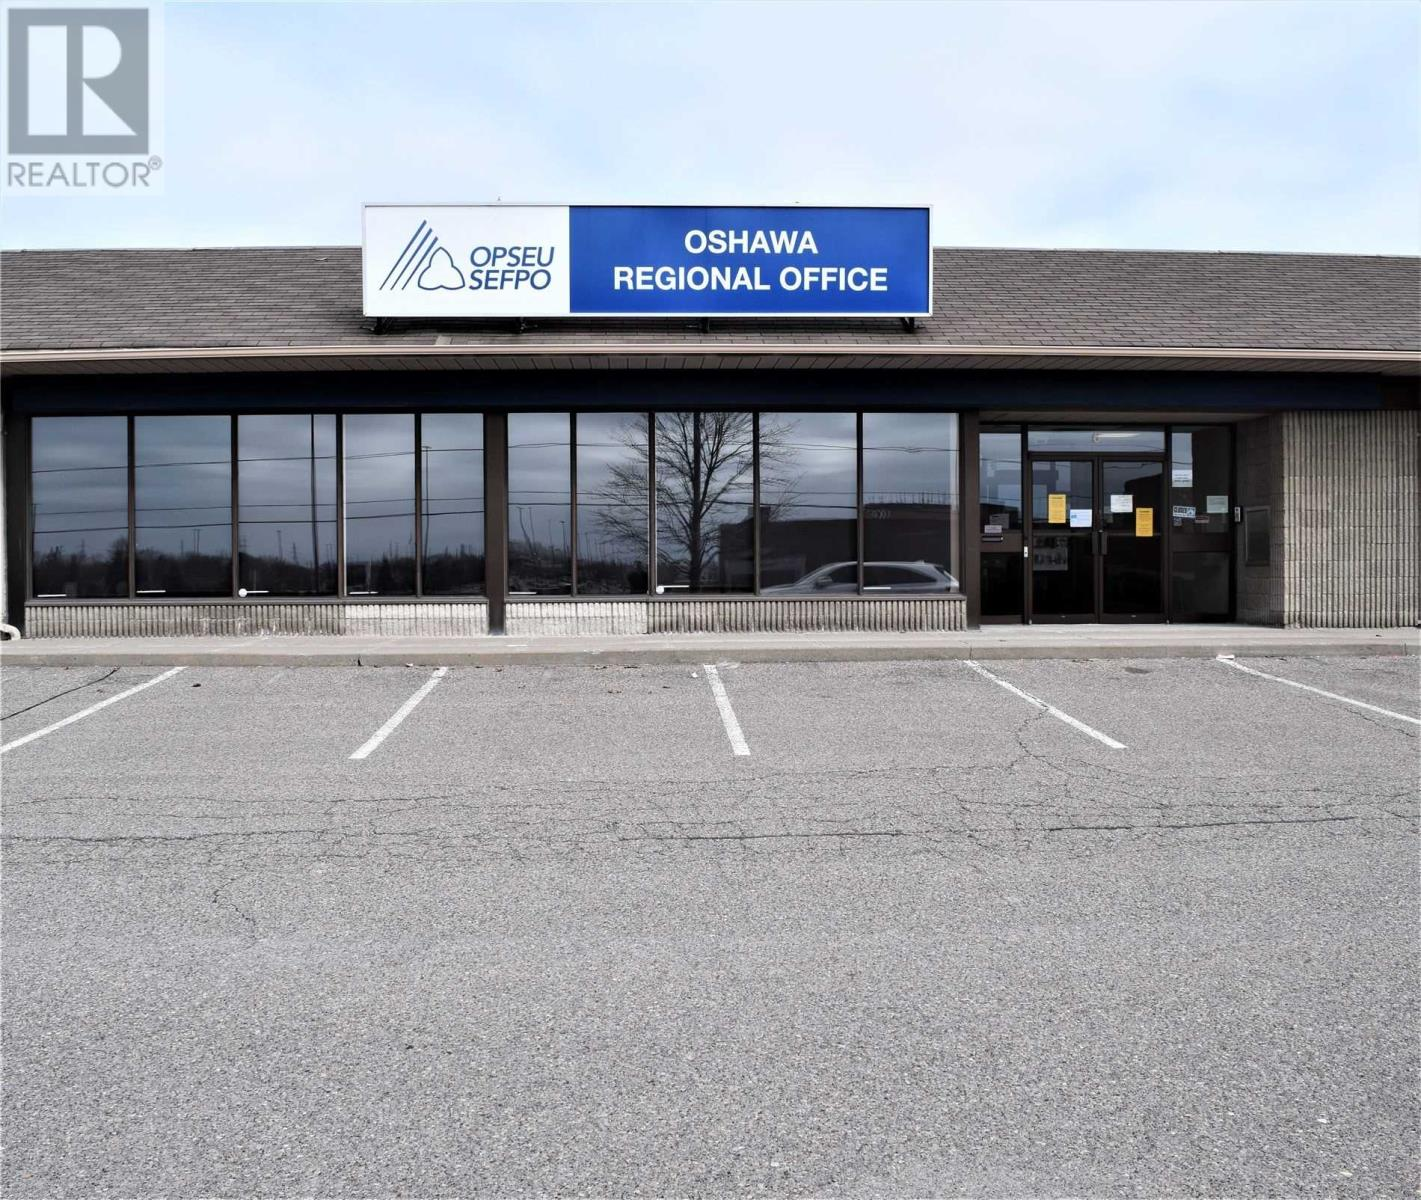 residential property for For lease at Oshawa, Ontario